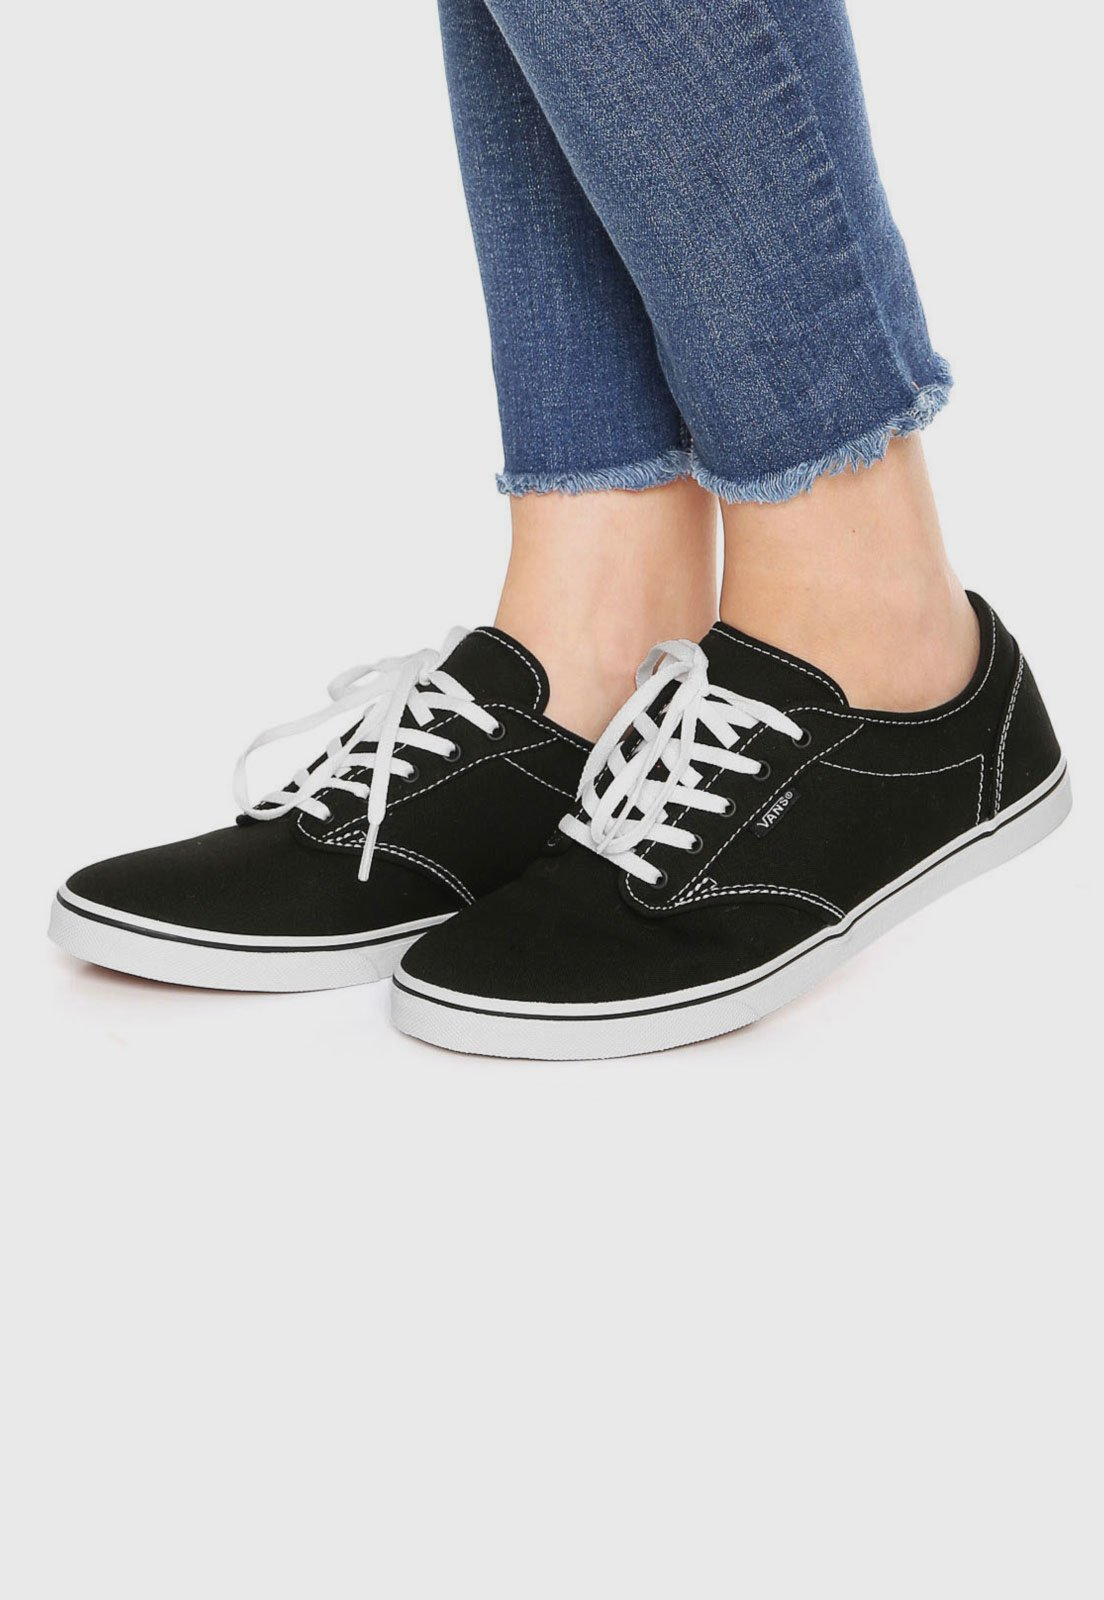 53bee586ae Tênis Vans Atwood Low Preto - Compre Agora